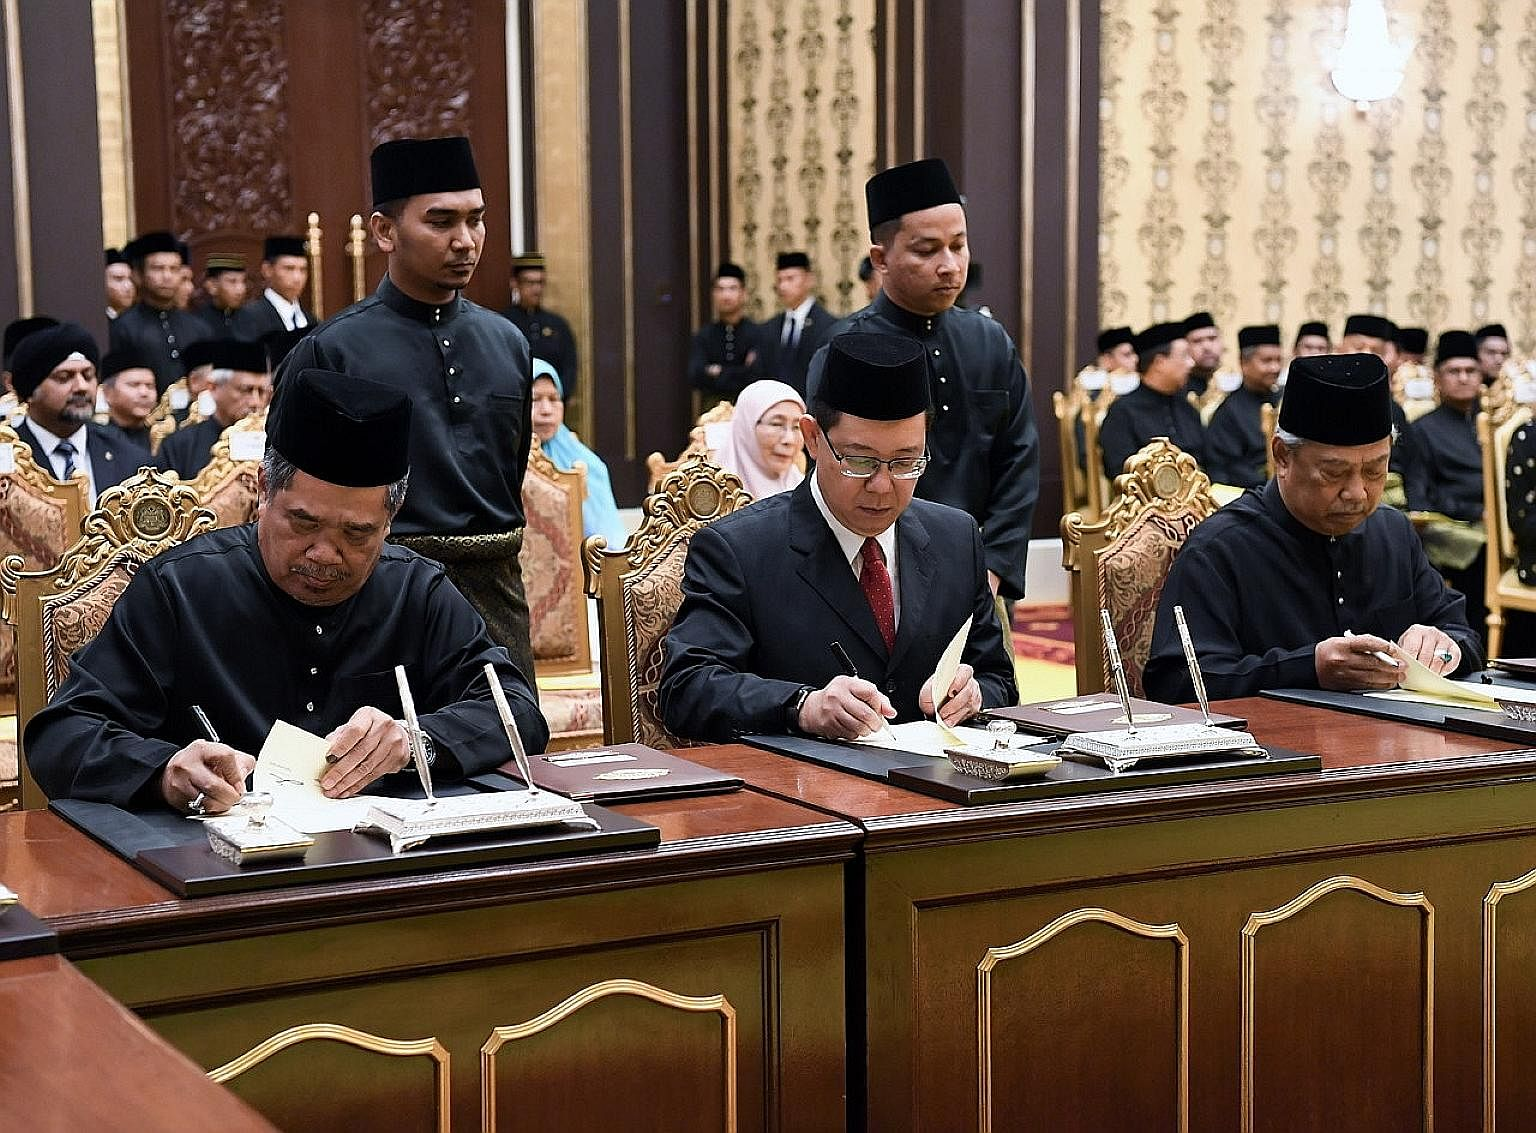 Defence Minister Mohamad Sabu, Finance Minister Lim Guan Eng and Home Minister Muhyiddin Yassin signing their appointment letters at the Istana Negara in Kuala Lumpur yesterday. They were among 13 members of Tun Dr Mahathir Mohamad's core